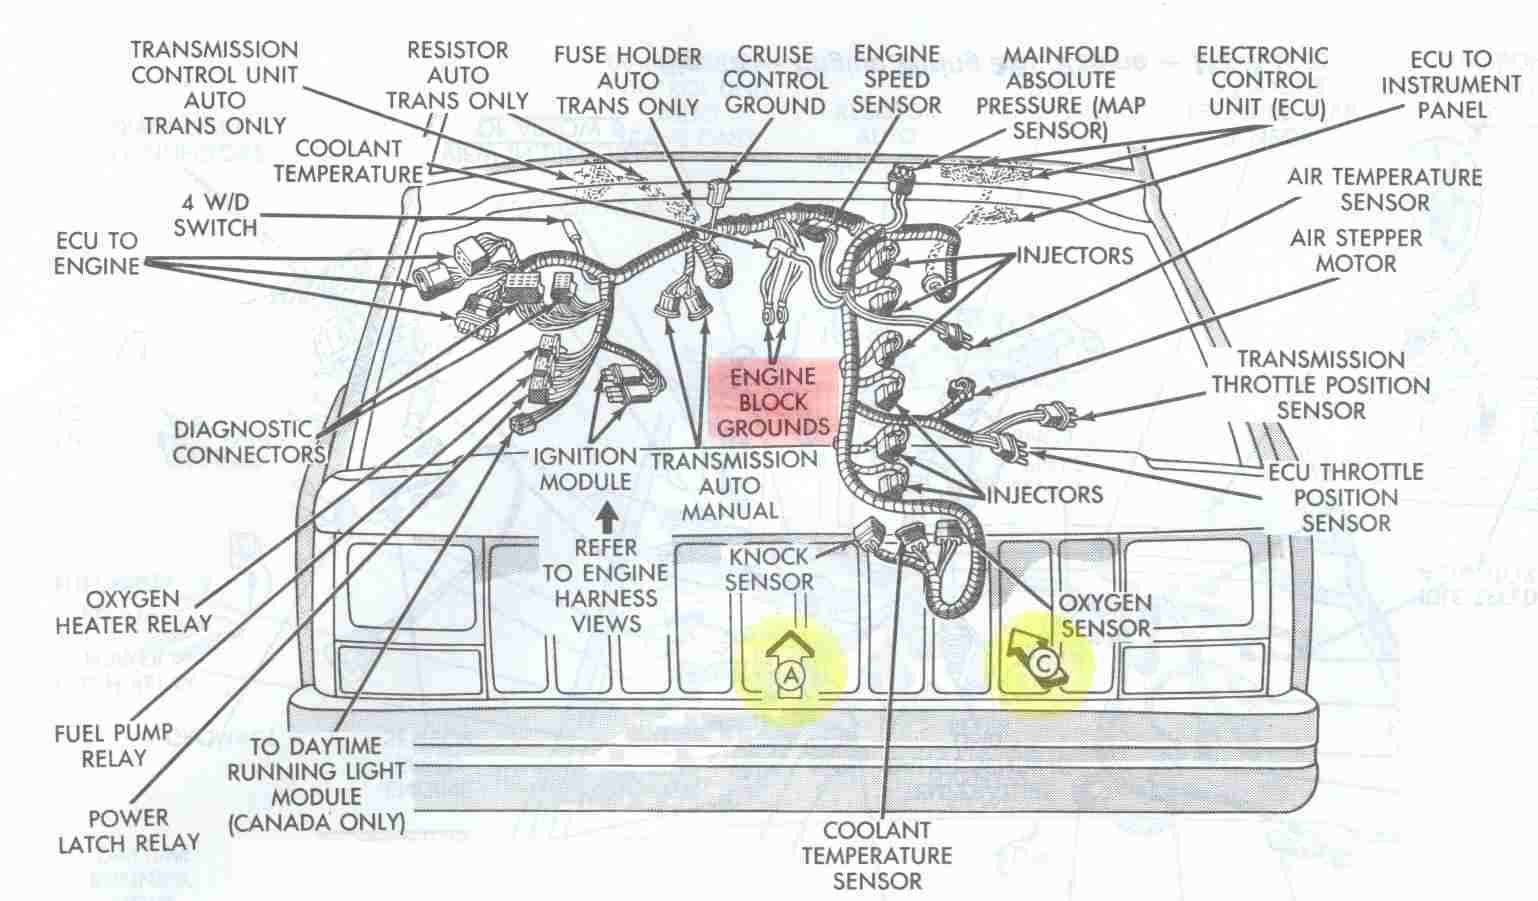 ab0134a7d9e021431187af597eb4aeca engine bay schematic showing major electrical ground points for 2000 Jeep Cherokee Wiring Harness Diagram at honlapkeszites.co